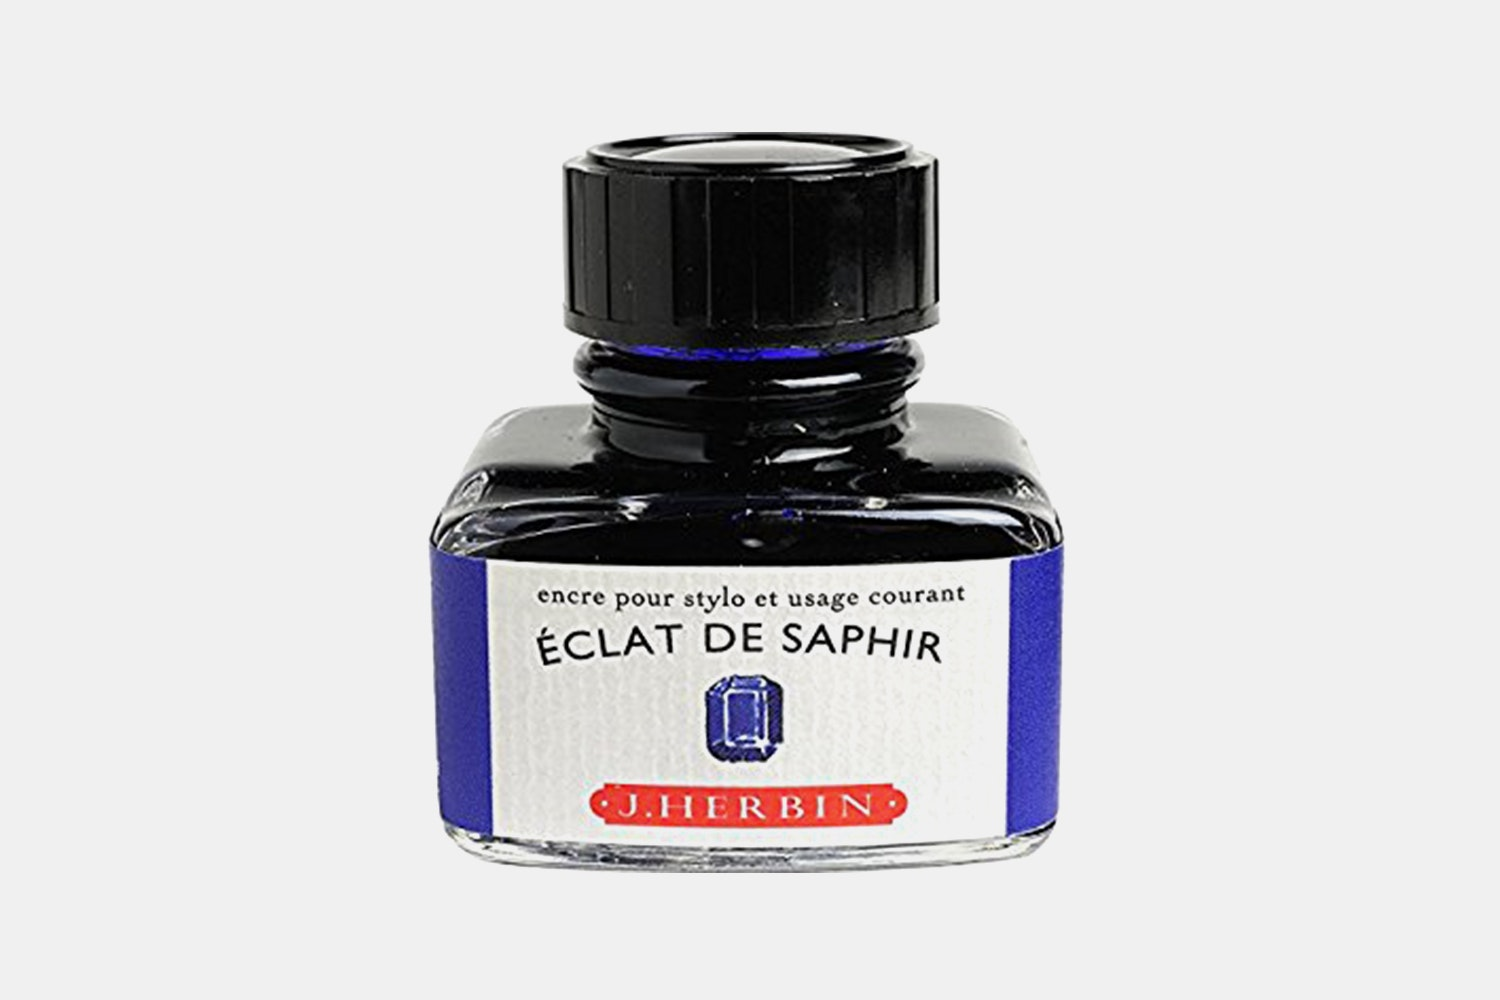 J. Herbin 30ml Bottled Ink -Eclat de Saphir (royal blue)